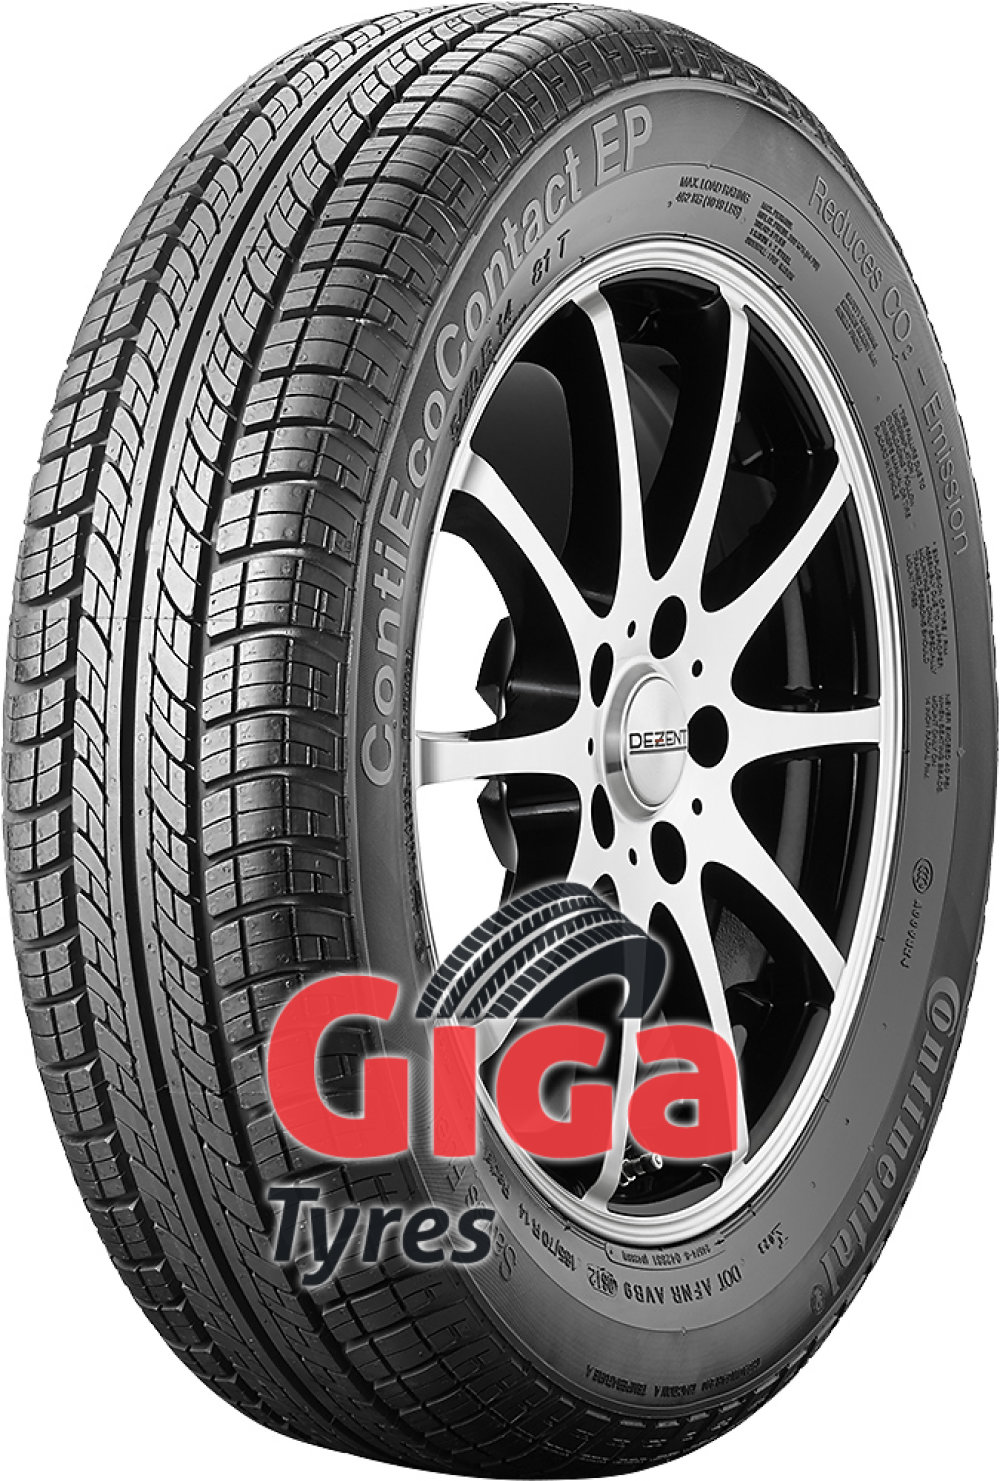 Continental EcoContact EP ( 175/55 R15 77T with kerbing rib )